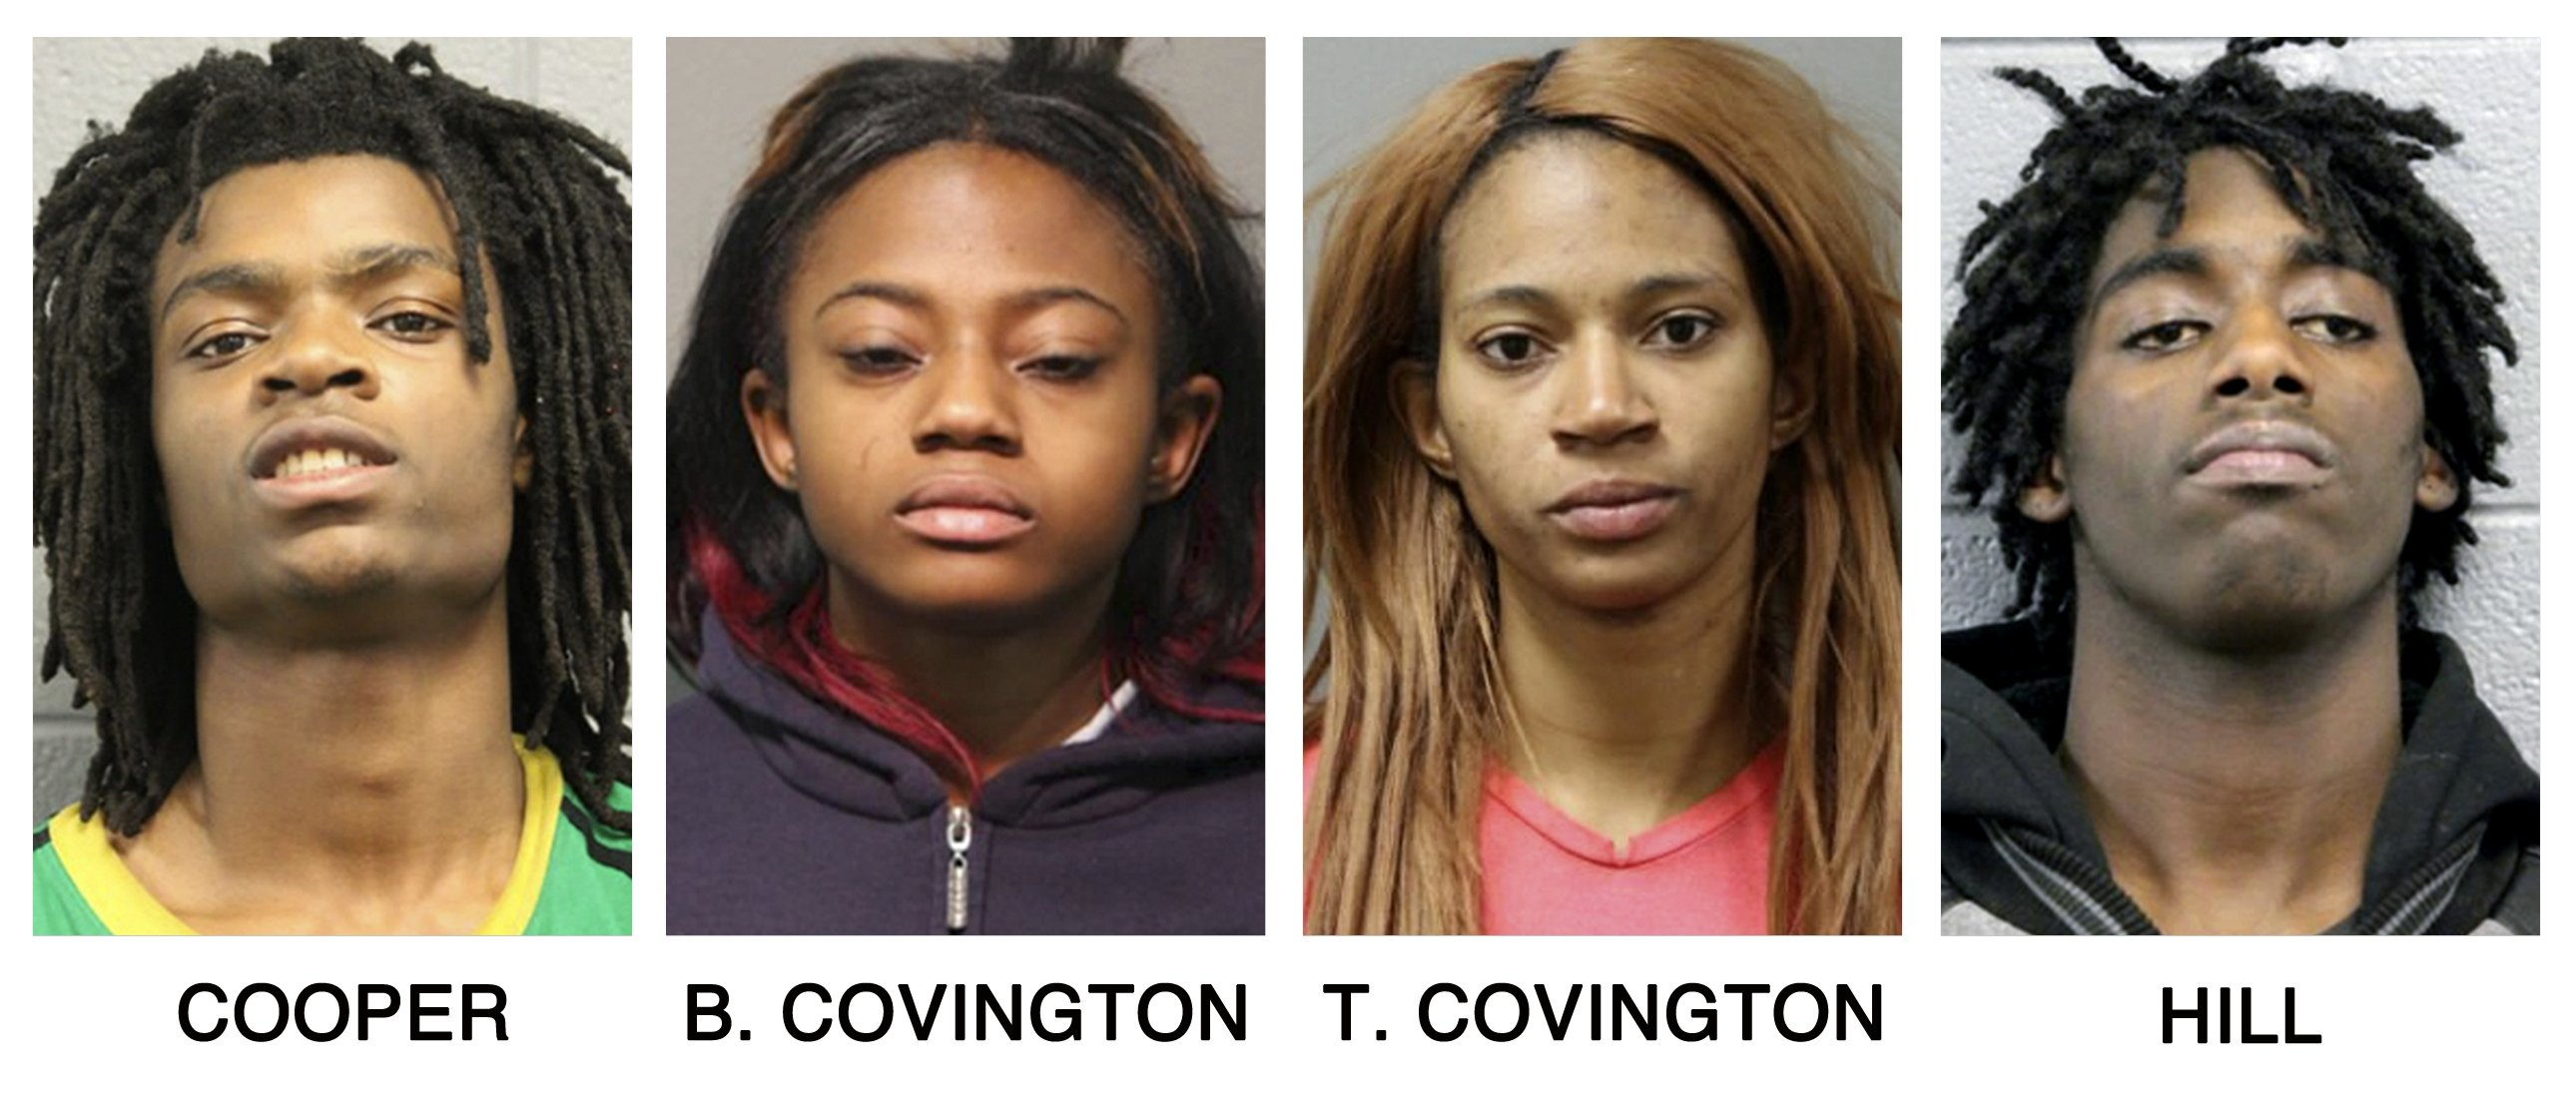 Suspects in videotaped beating plead not guilty in Chicago